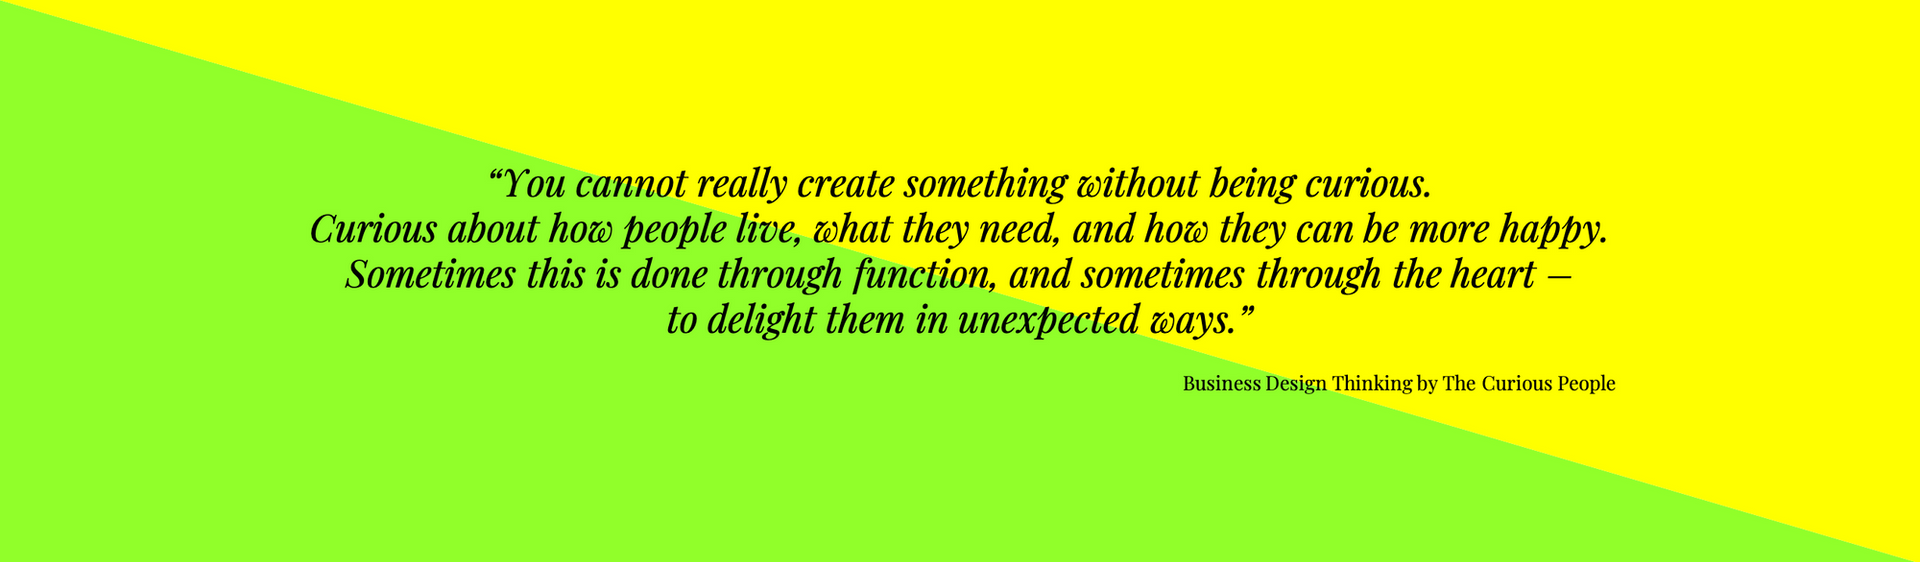 """""""You cannot really create something without being curious.   Curious about how people live, what they need, and how they can be more happy.   Sometimes this is done through function, and sometimes through the heart –  to delight them in unexpected ways."""""""